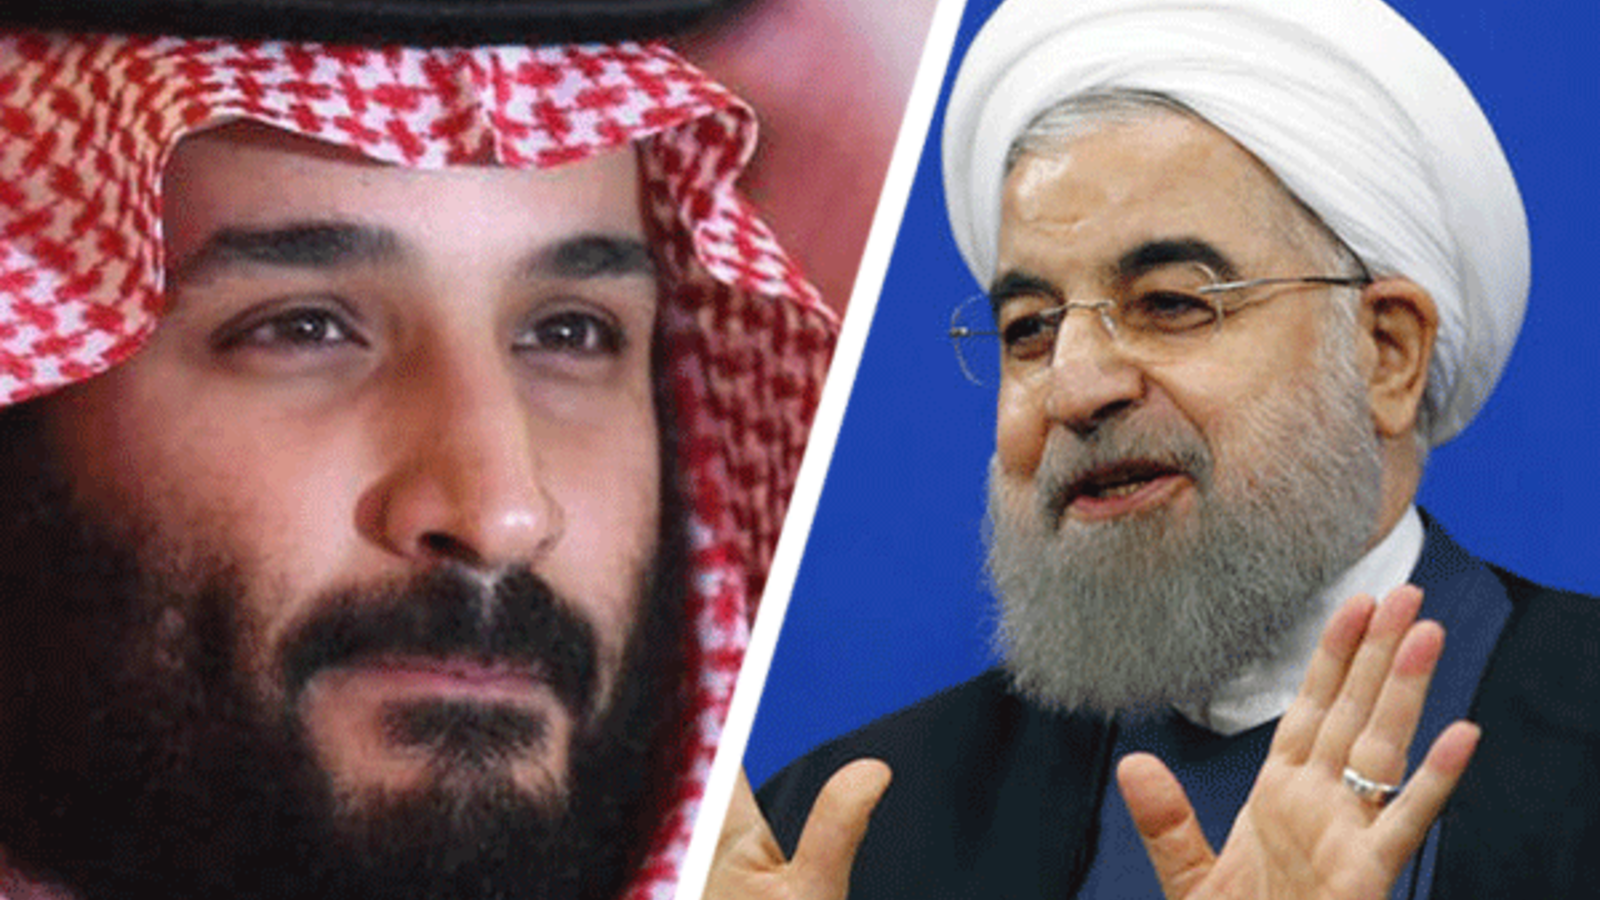 The Iranian Human Rights Council condemns the Saudi Public Prosector's demands to execute human rights activists.